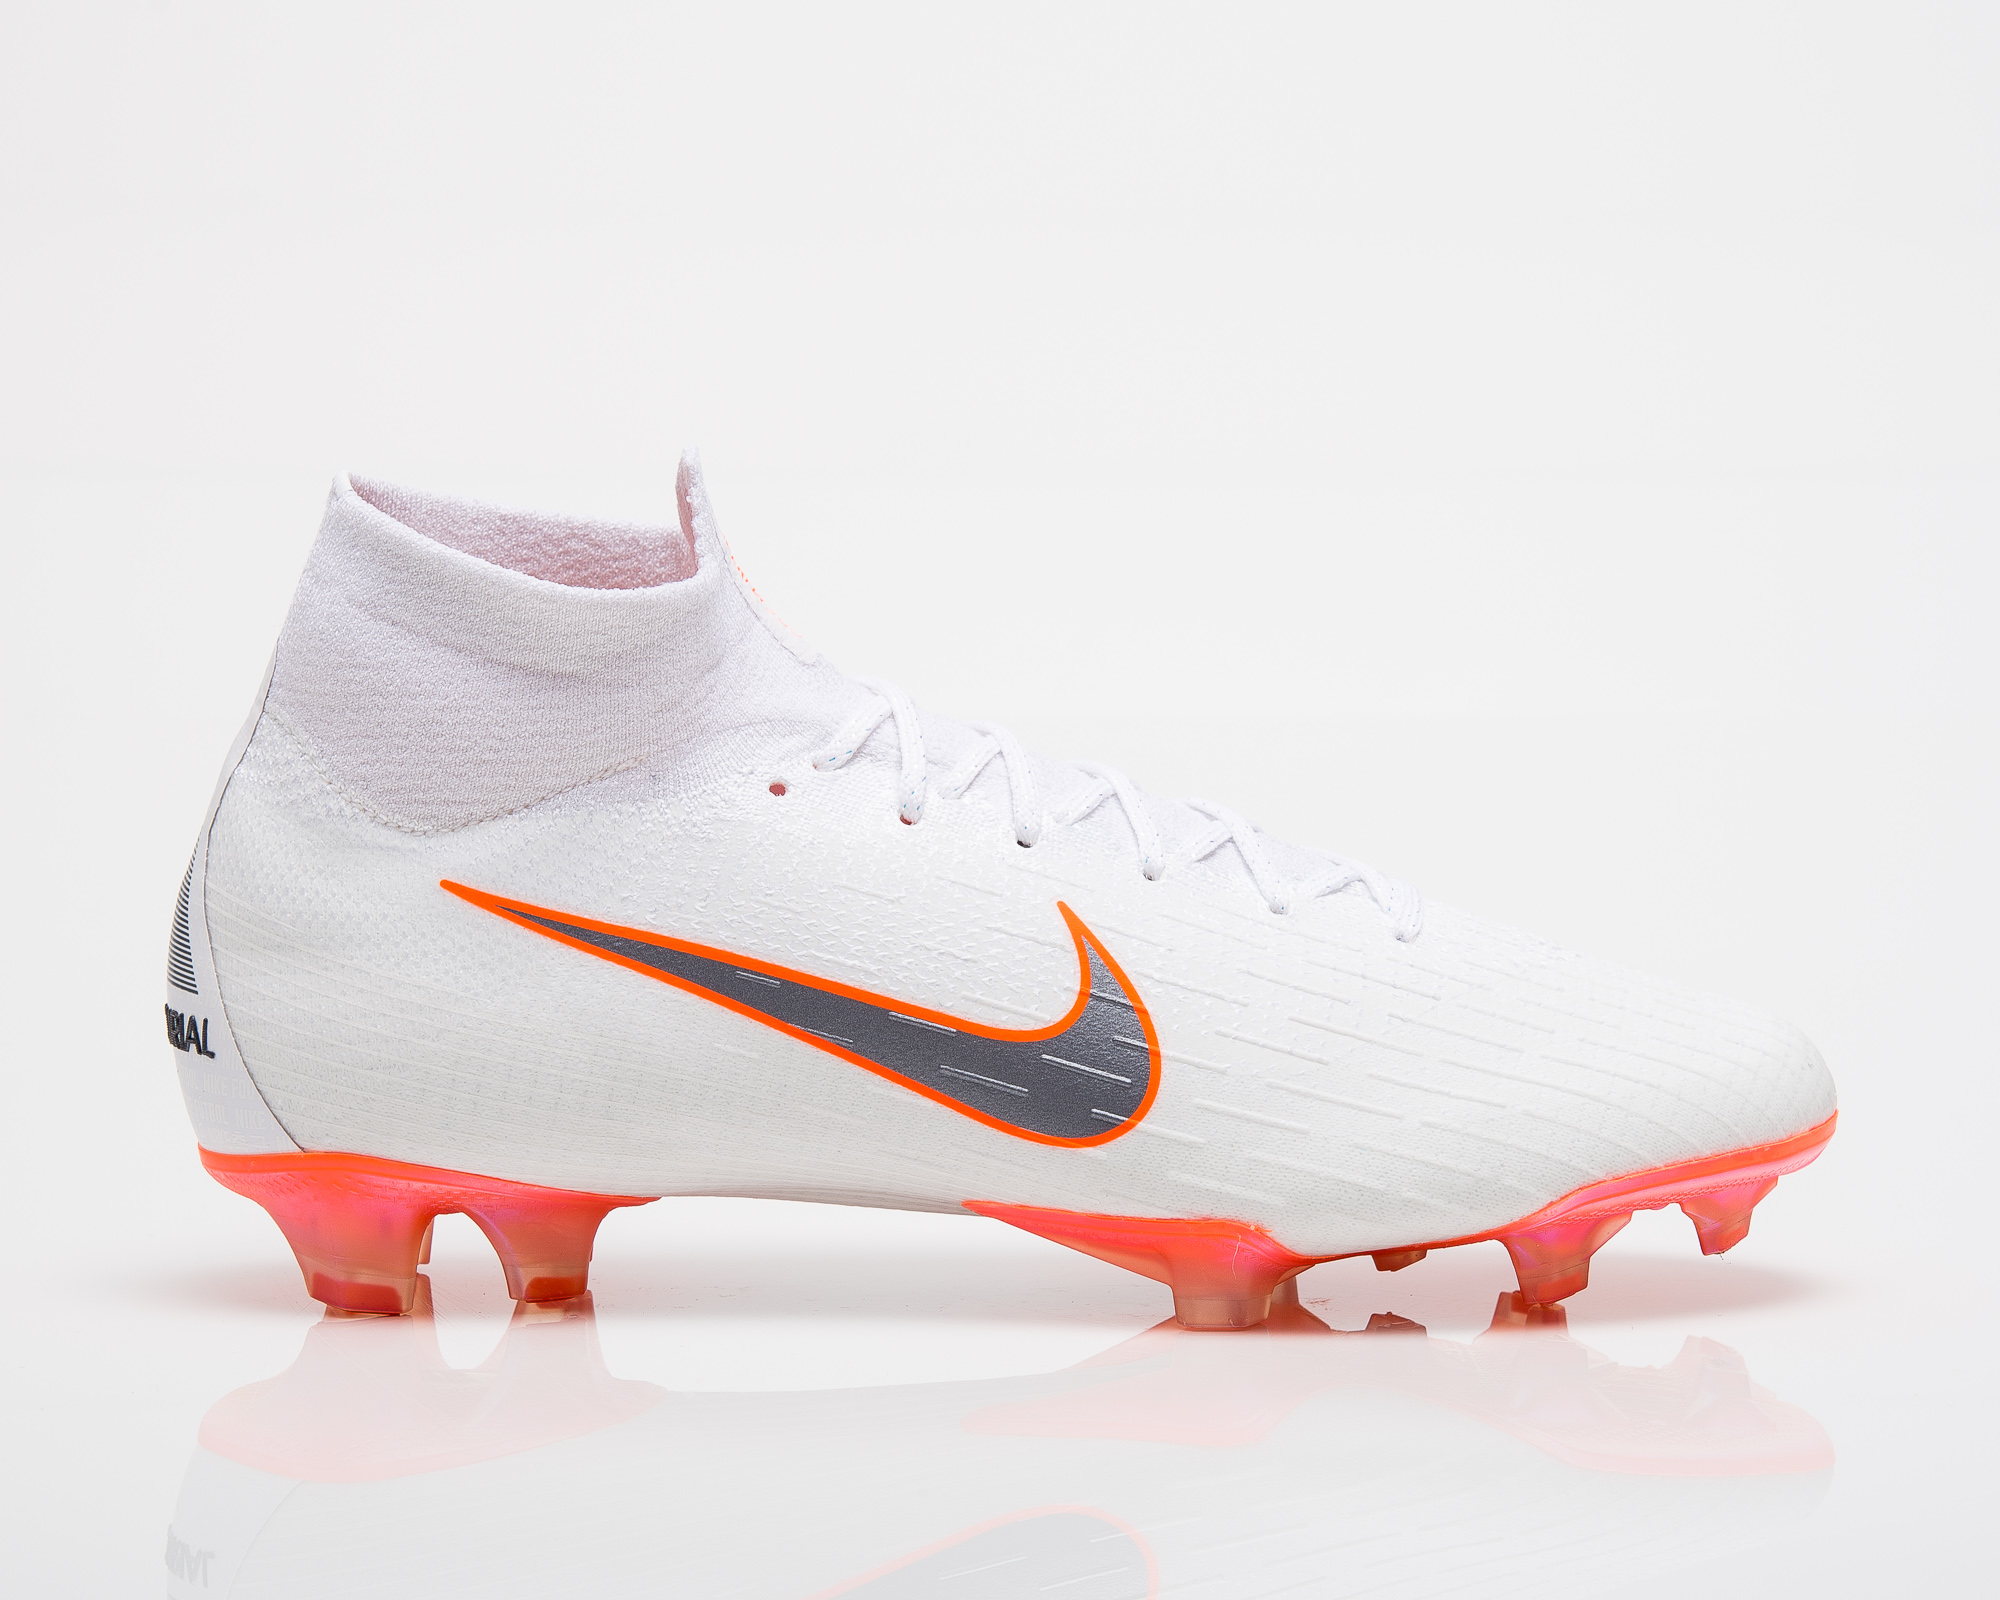 official photos 7e681 402b3 Nike Mercurial Superfly 360 Elite FG - Shoes Soccer ...